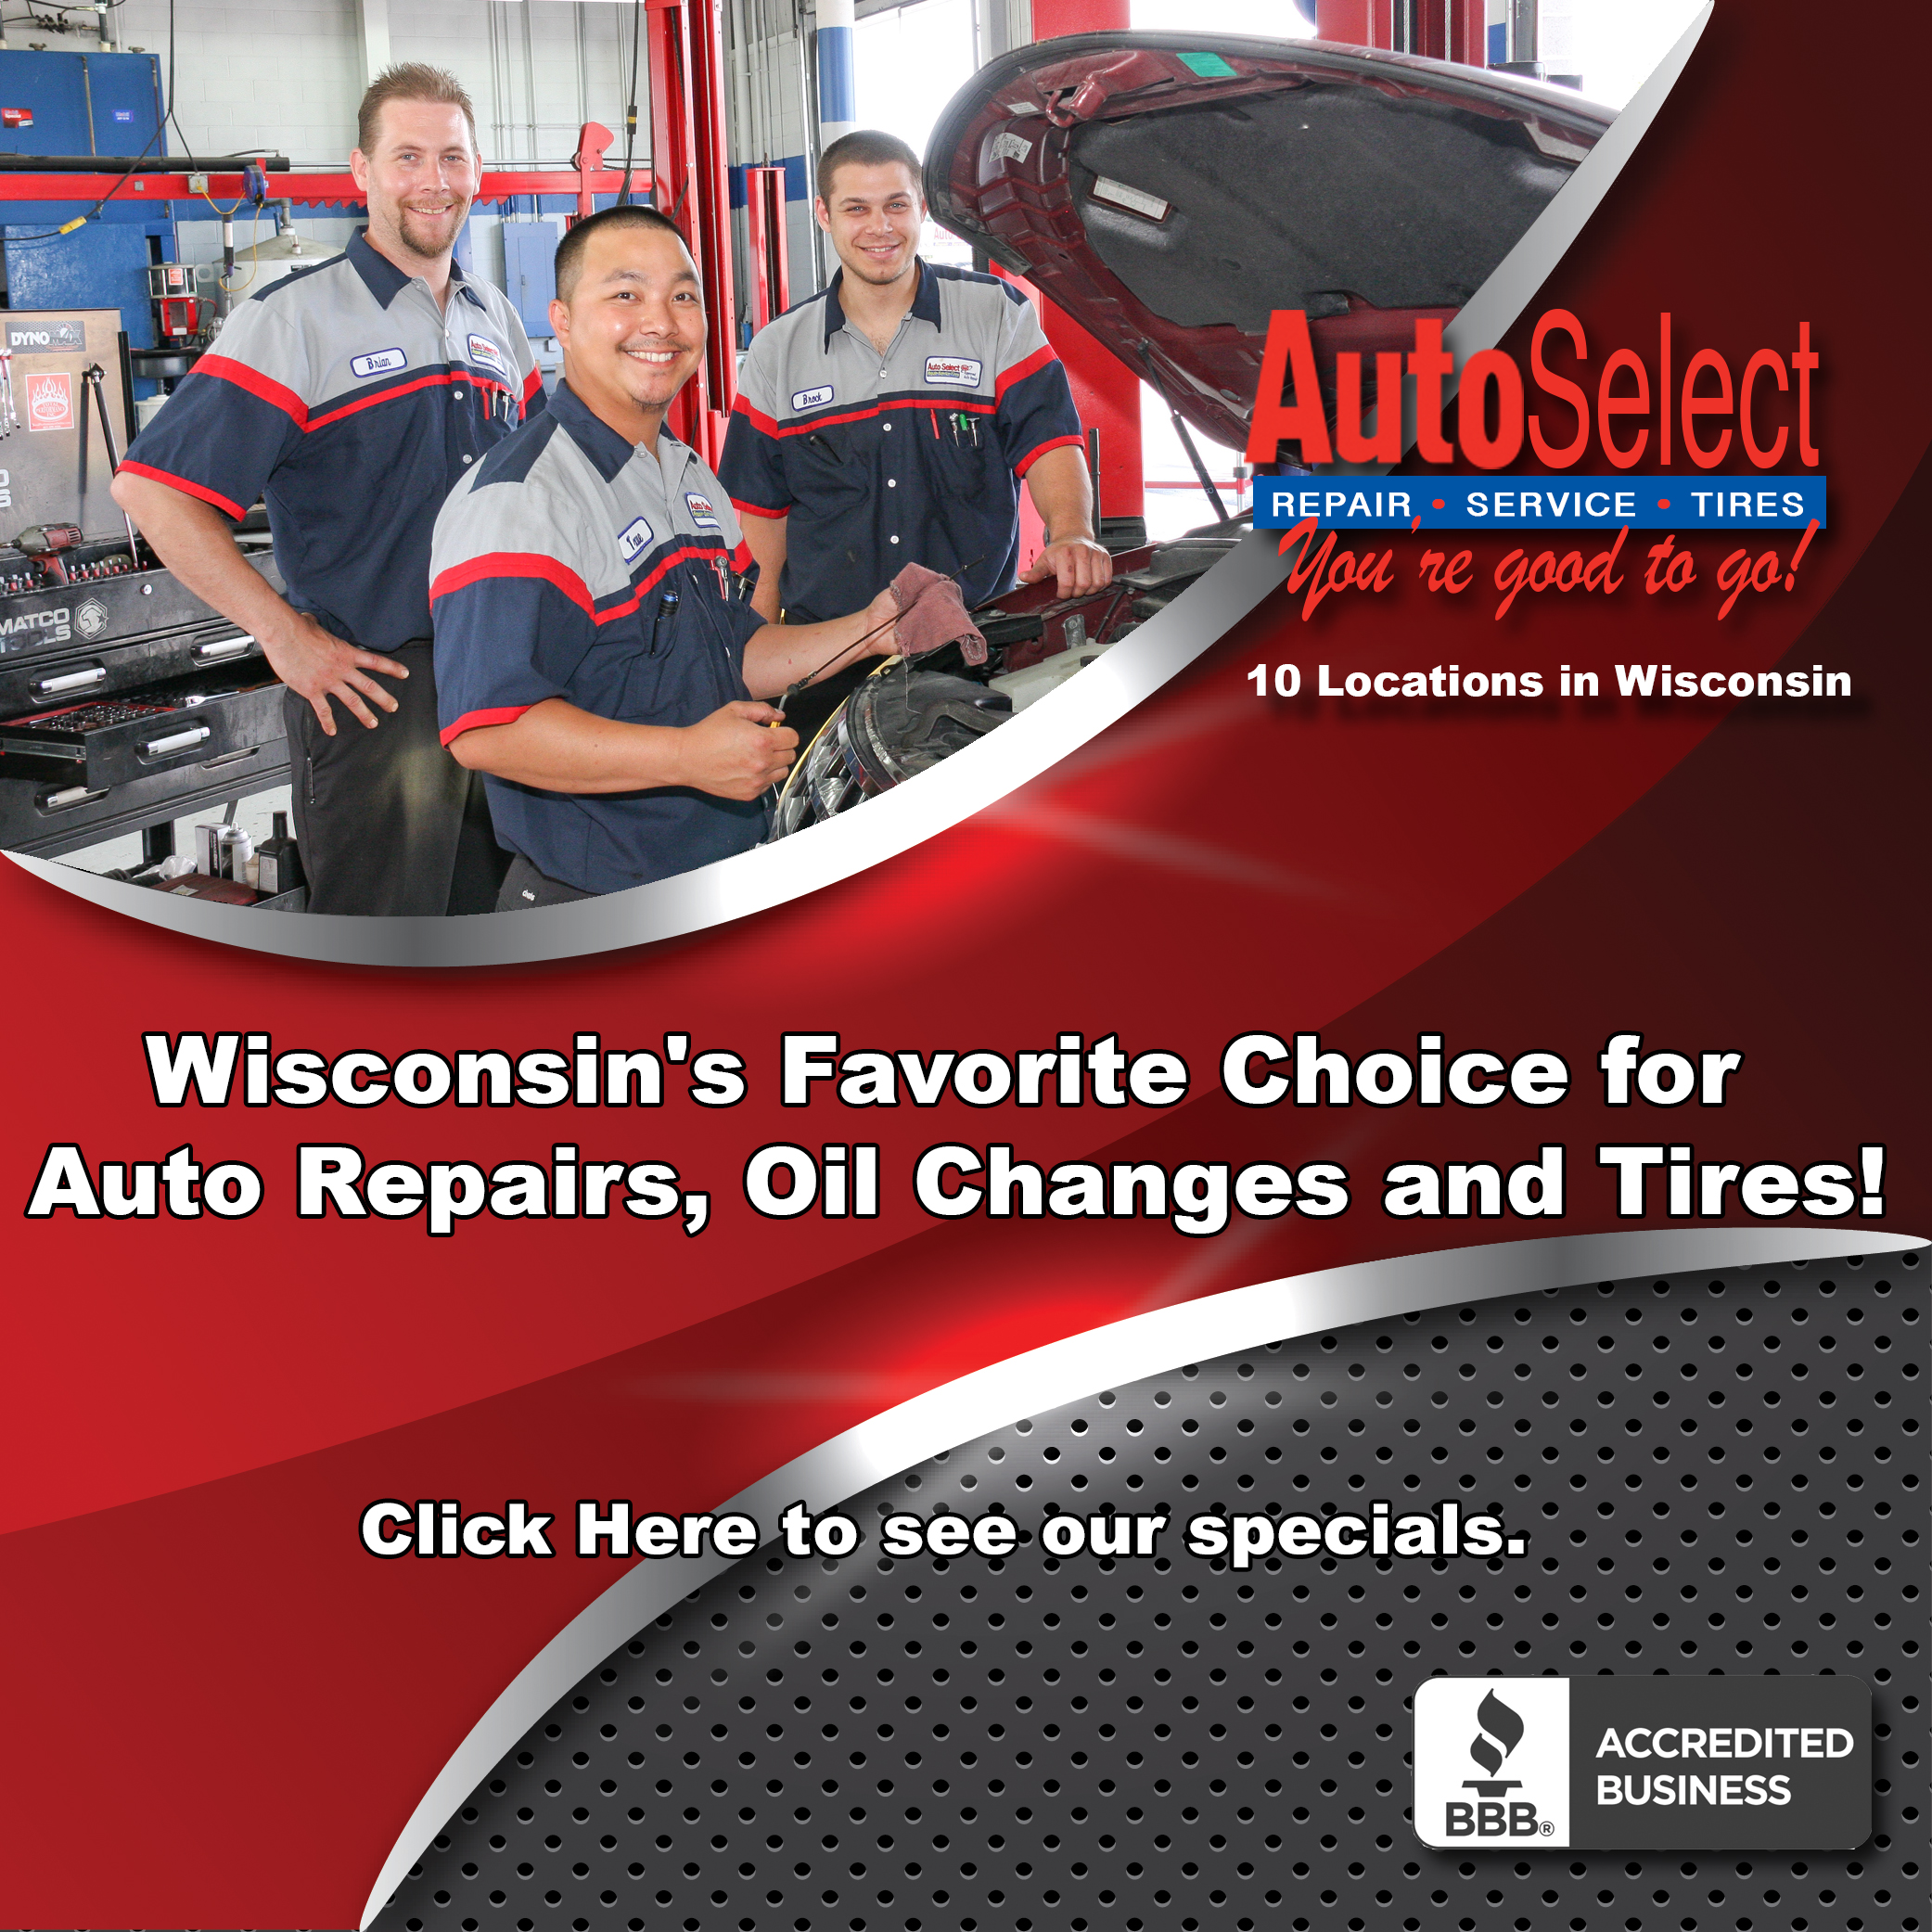 Towing Service in Appleton WI